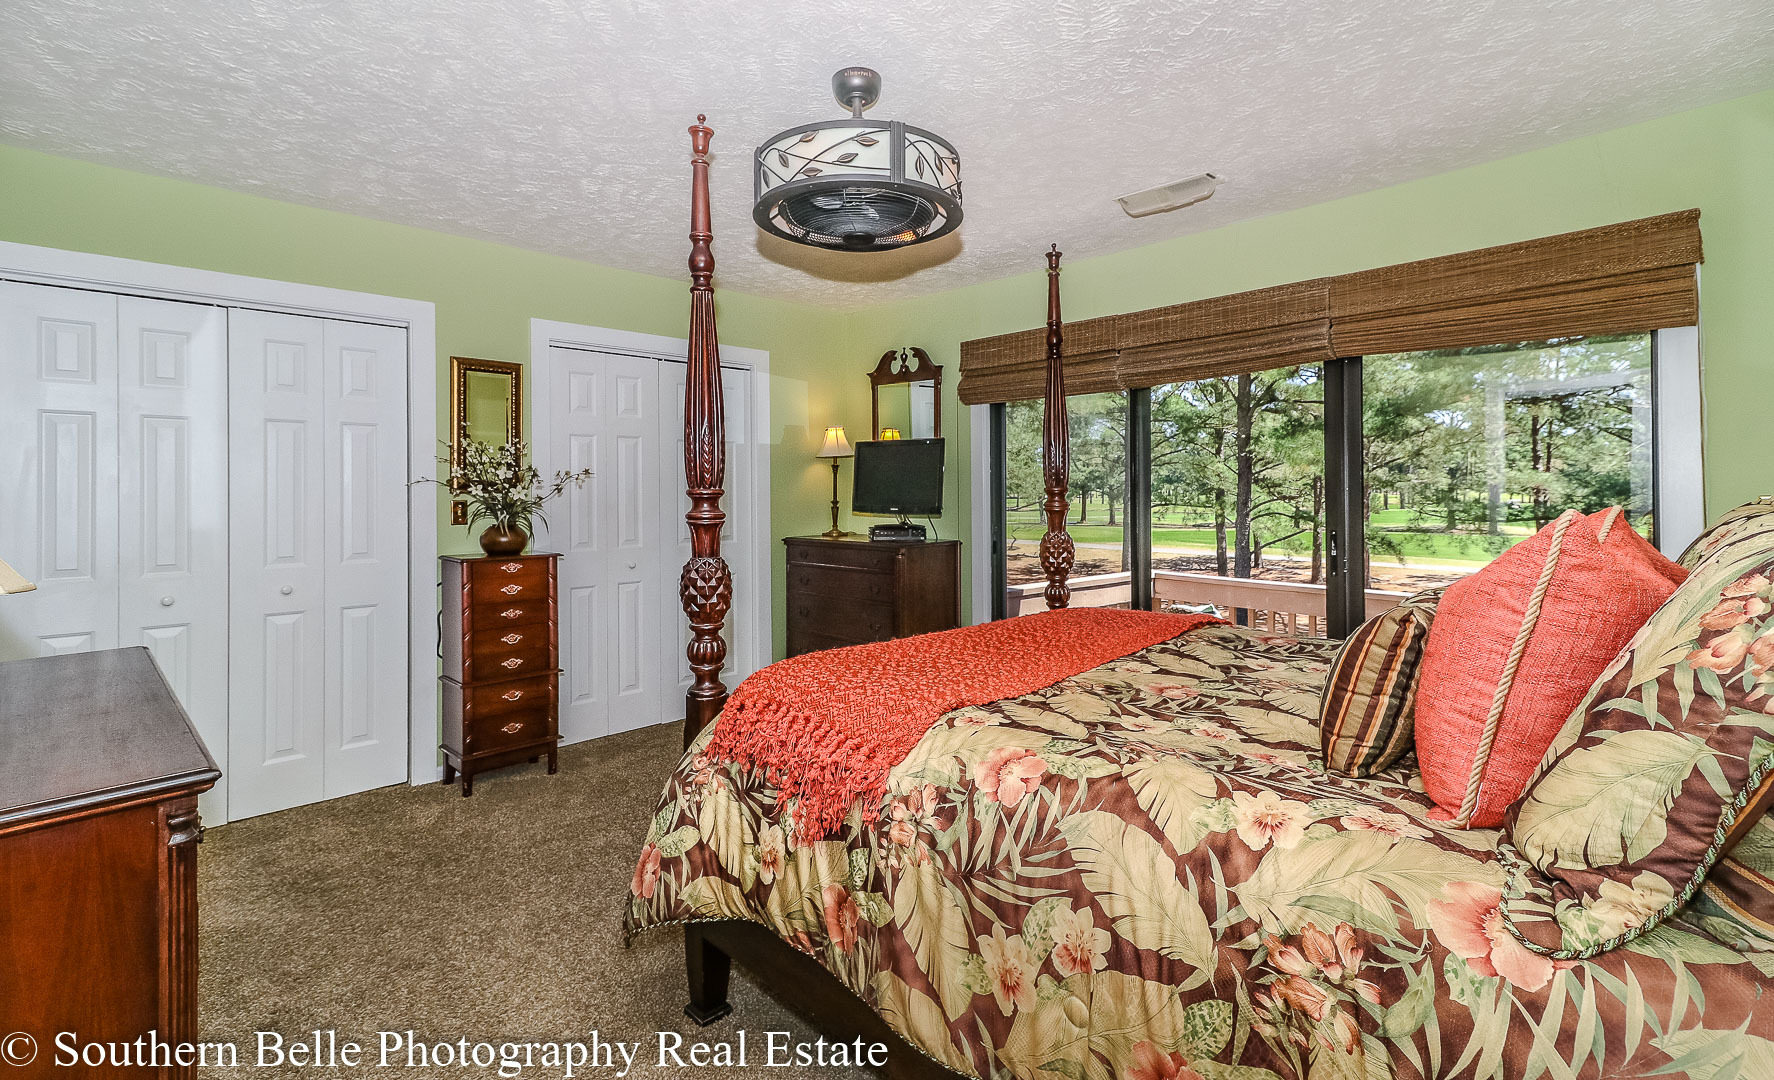 23. Master Bedrom with Golf Course Views WM